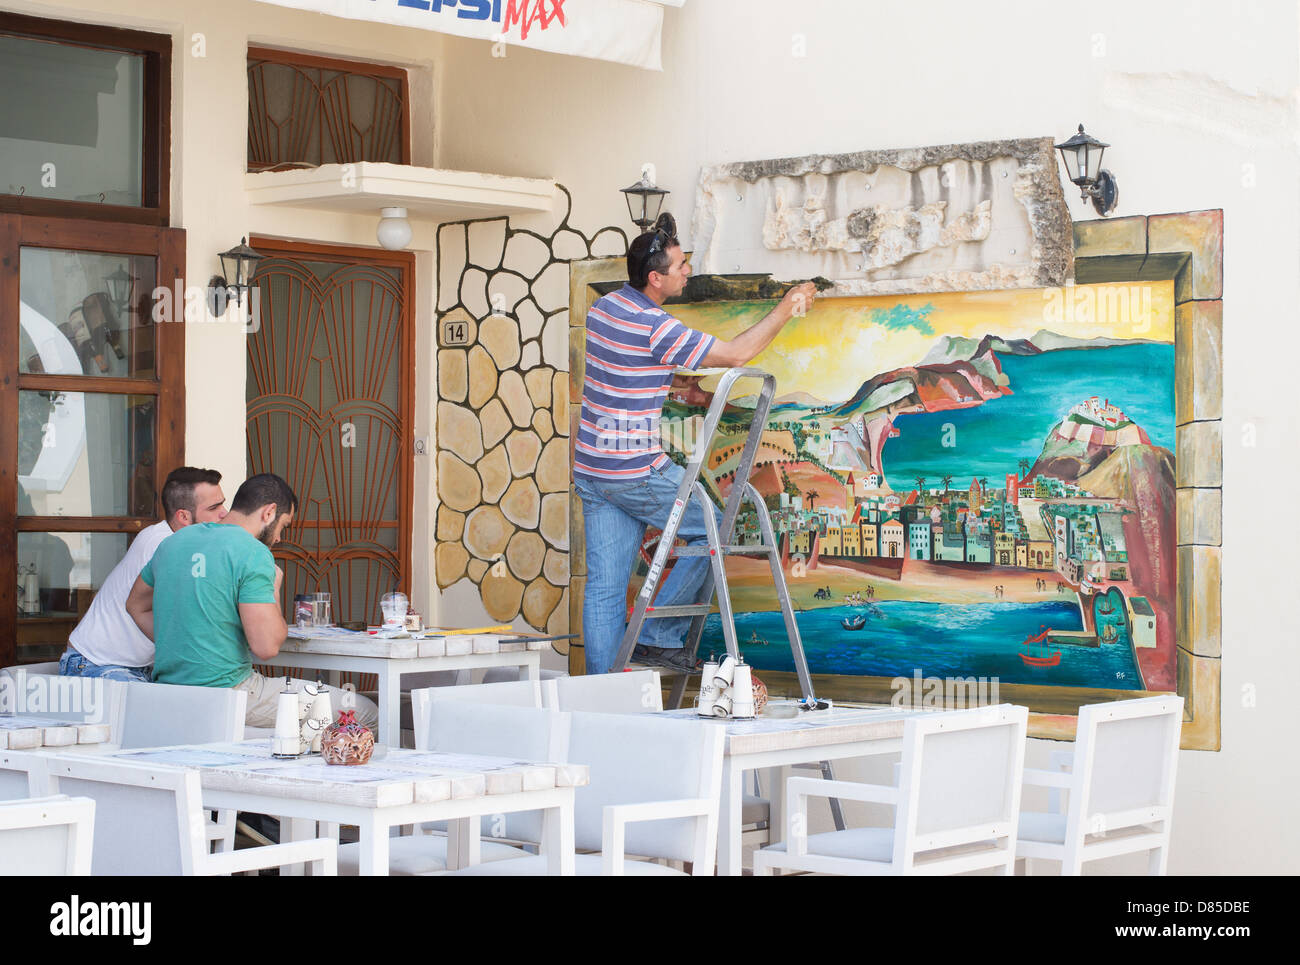 artist-painting-mural-at-a-caf-within-re